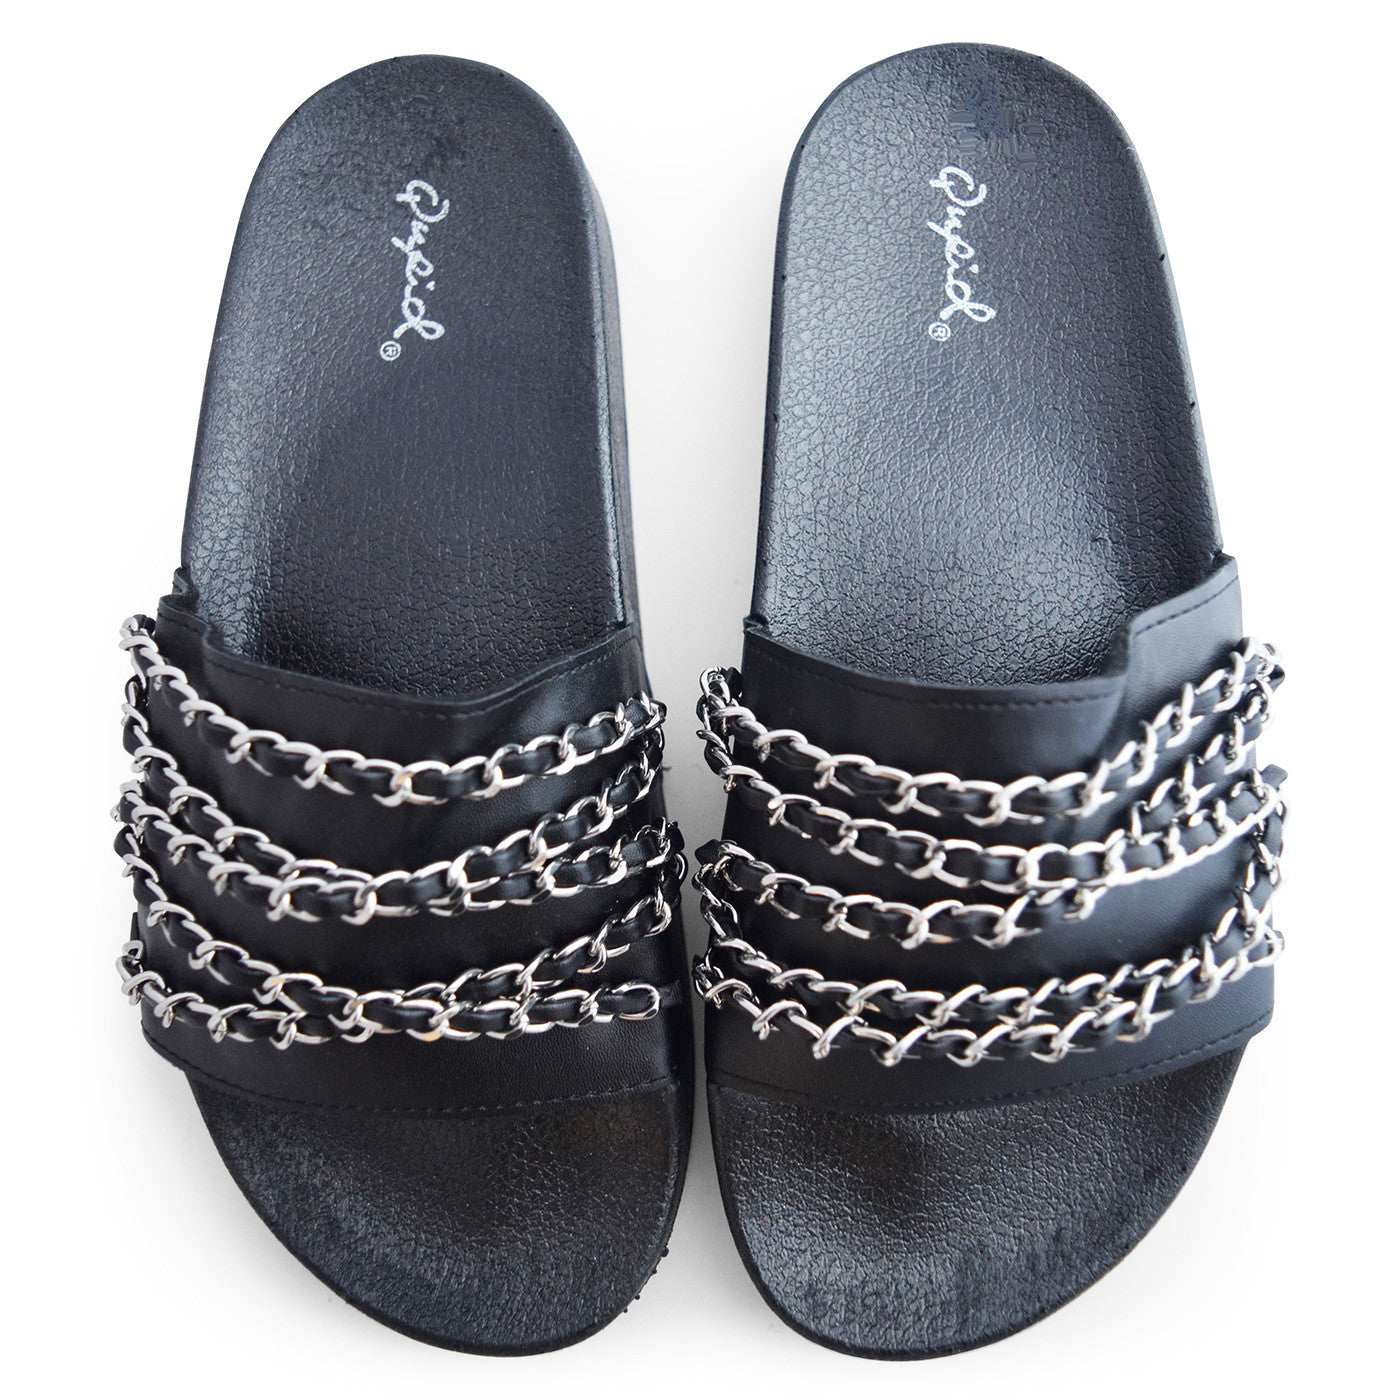 Chain Slides in Black